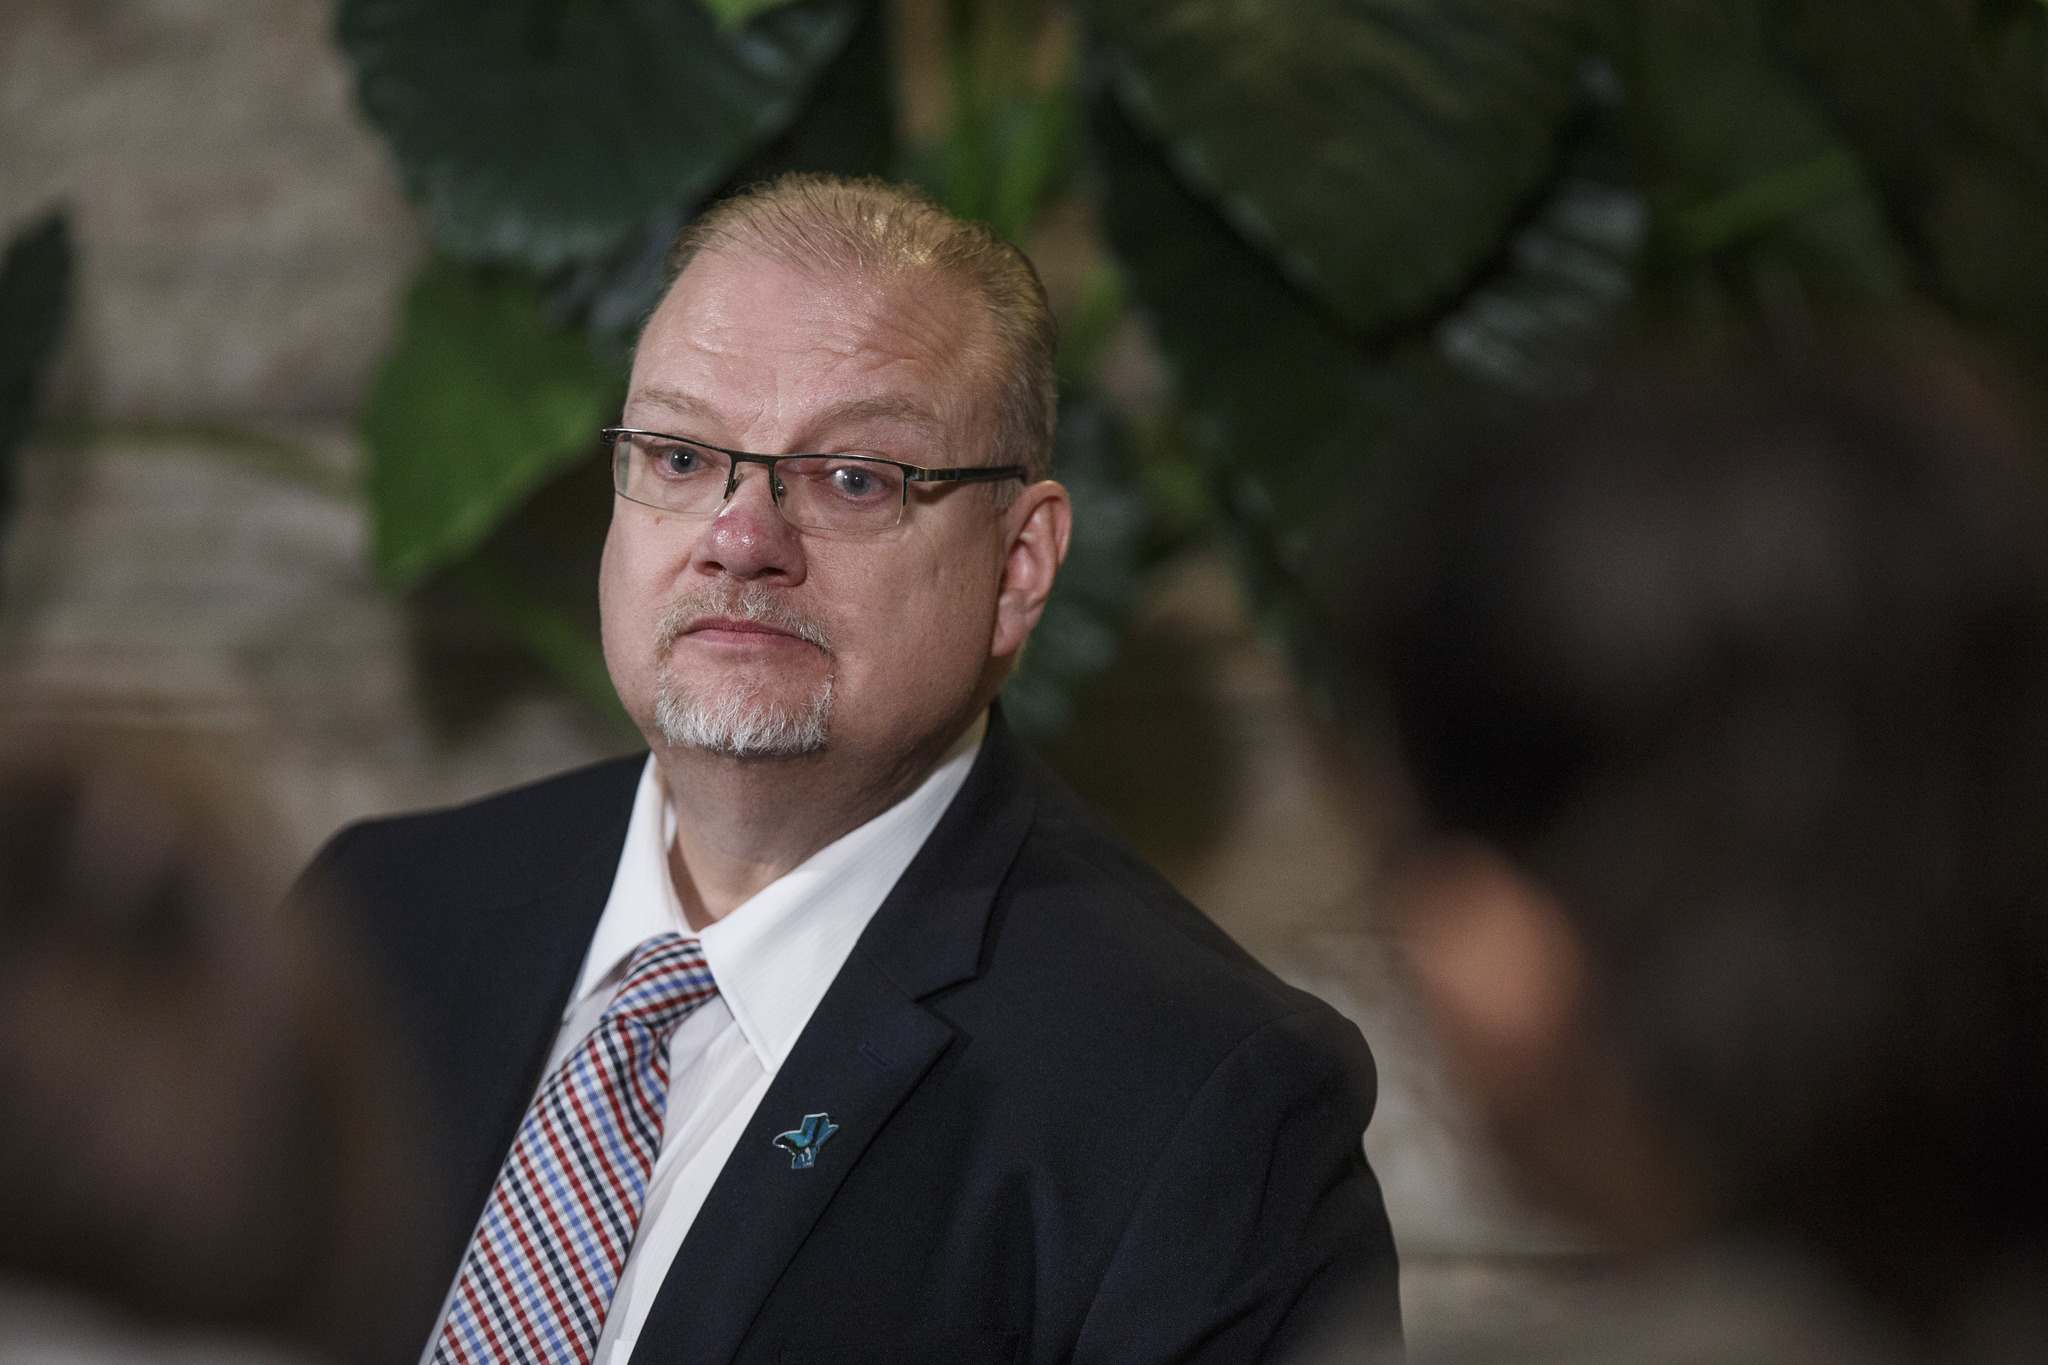 Education Minister Kelvin Goertzen has openly questioned the commitment of the province's teachers to producing better outcomes. (Mike Deal / Free Press files)